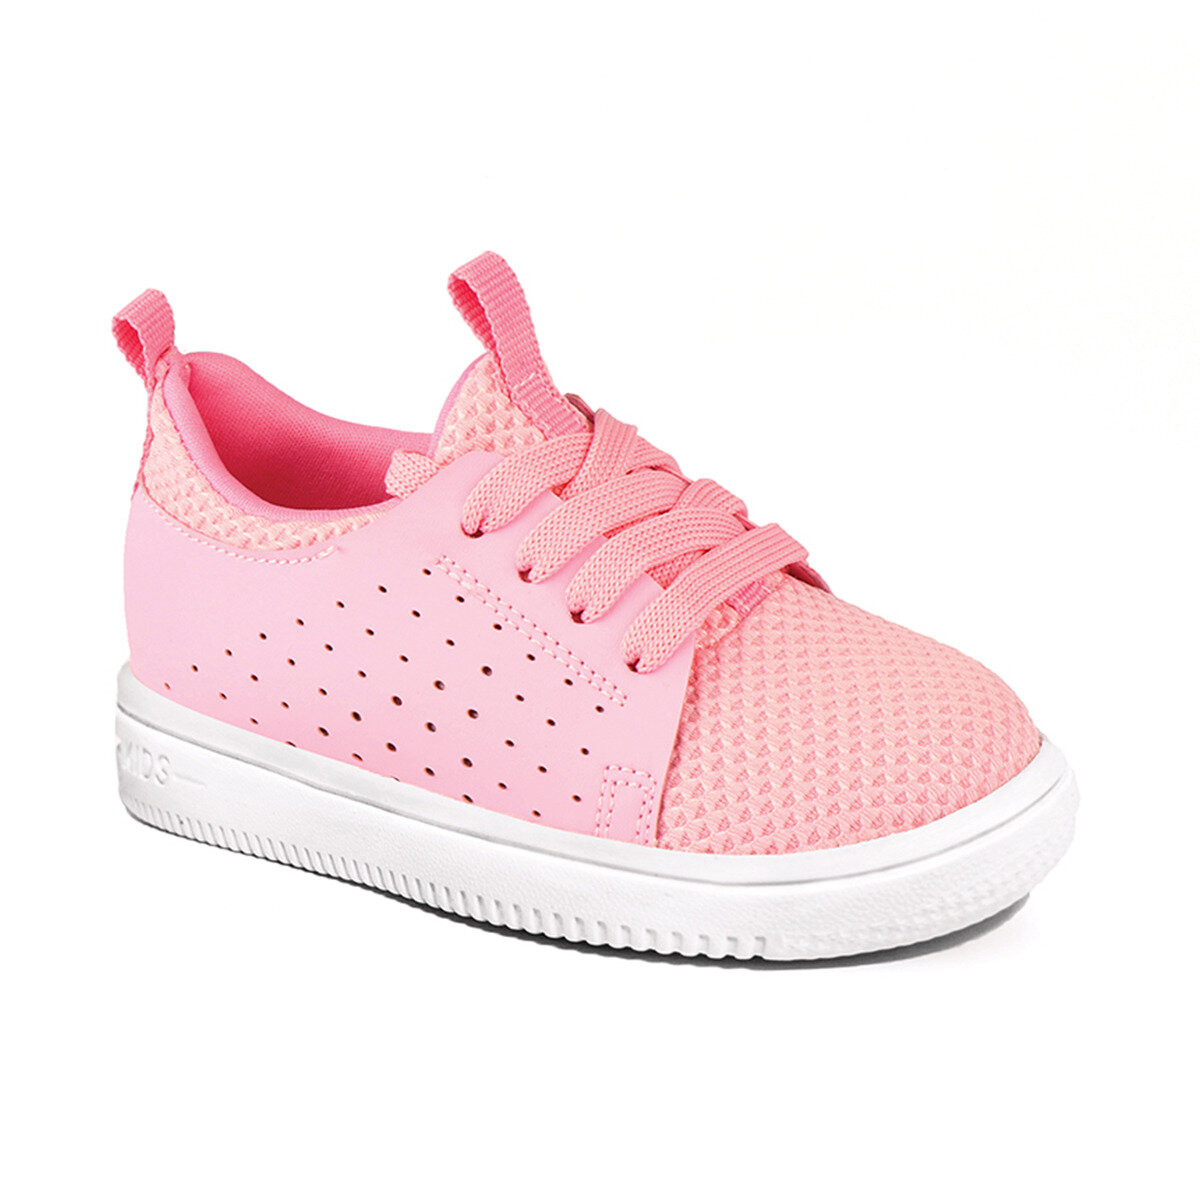 FLO 950.19Y.528 BEBE PHYLON Pink Female Child Thick Soled Sneaker VICCO